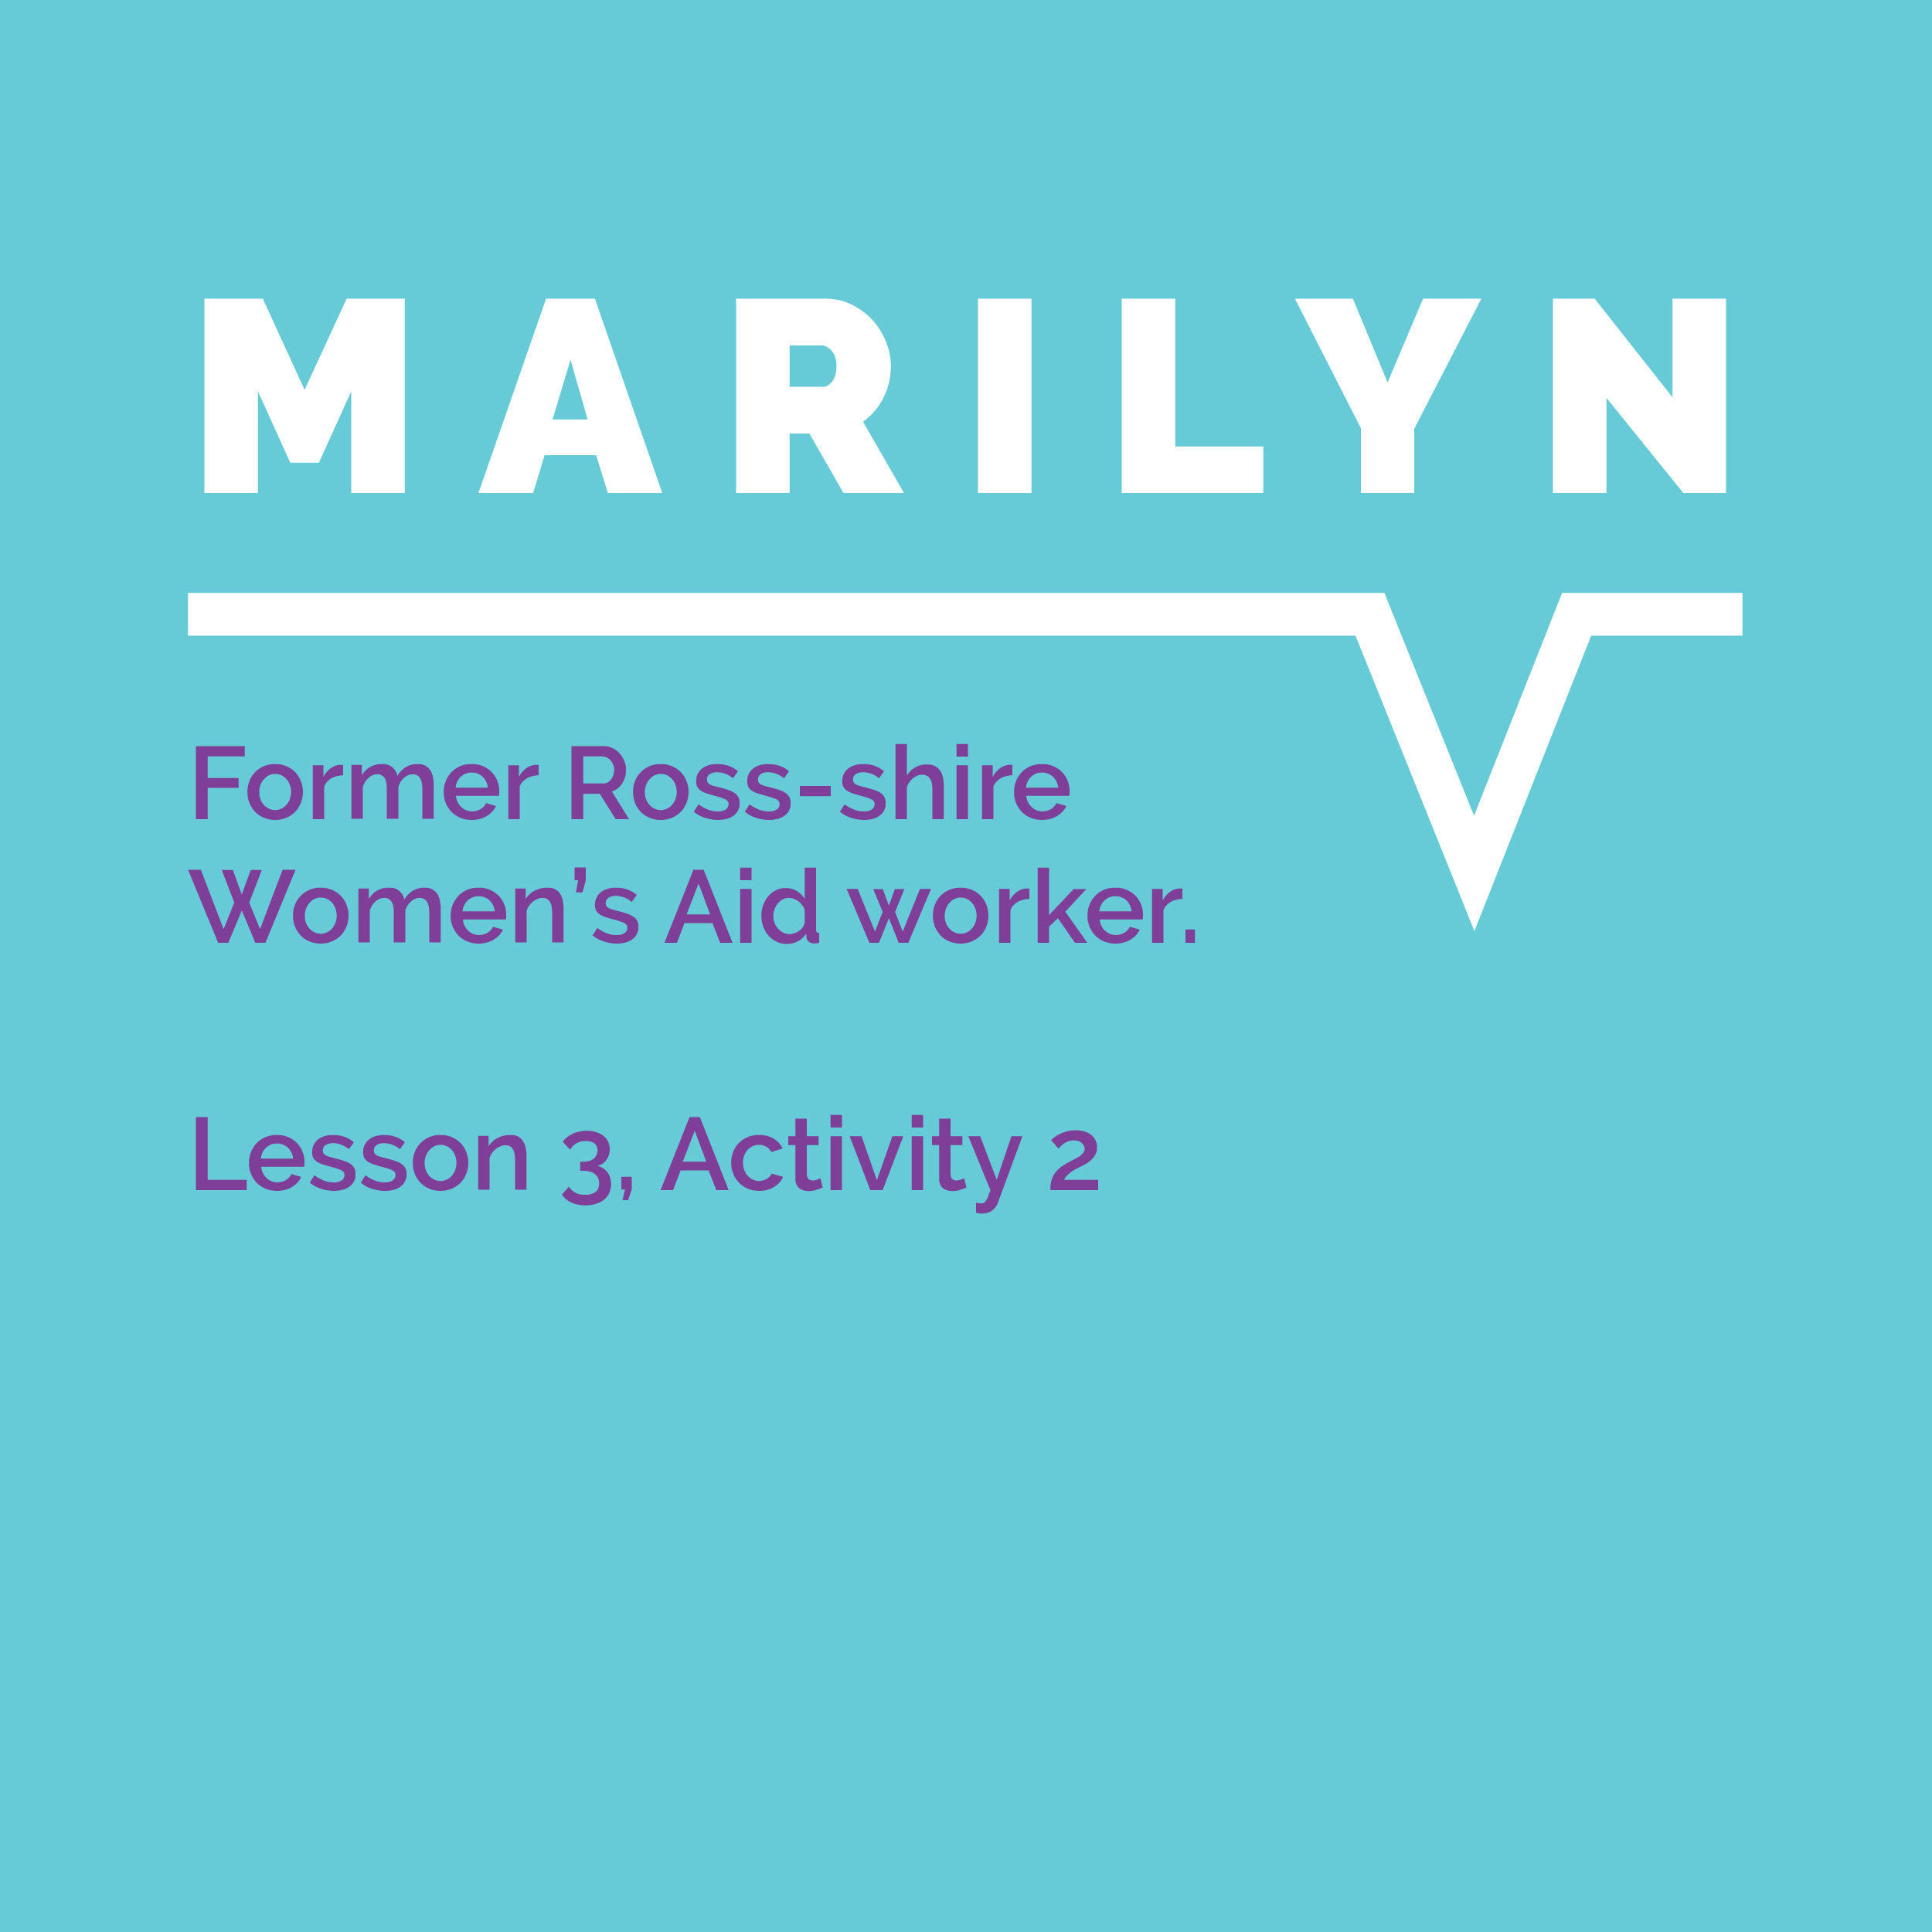 Speaking Out Learning Resource, Lesson 3, Activity 2: Marilyn, former Ross-shire Women's Aid worker